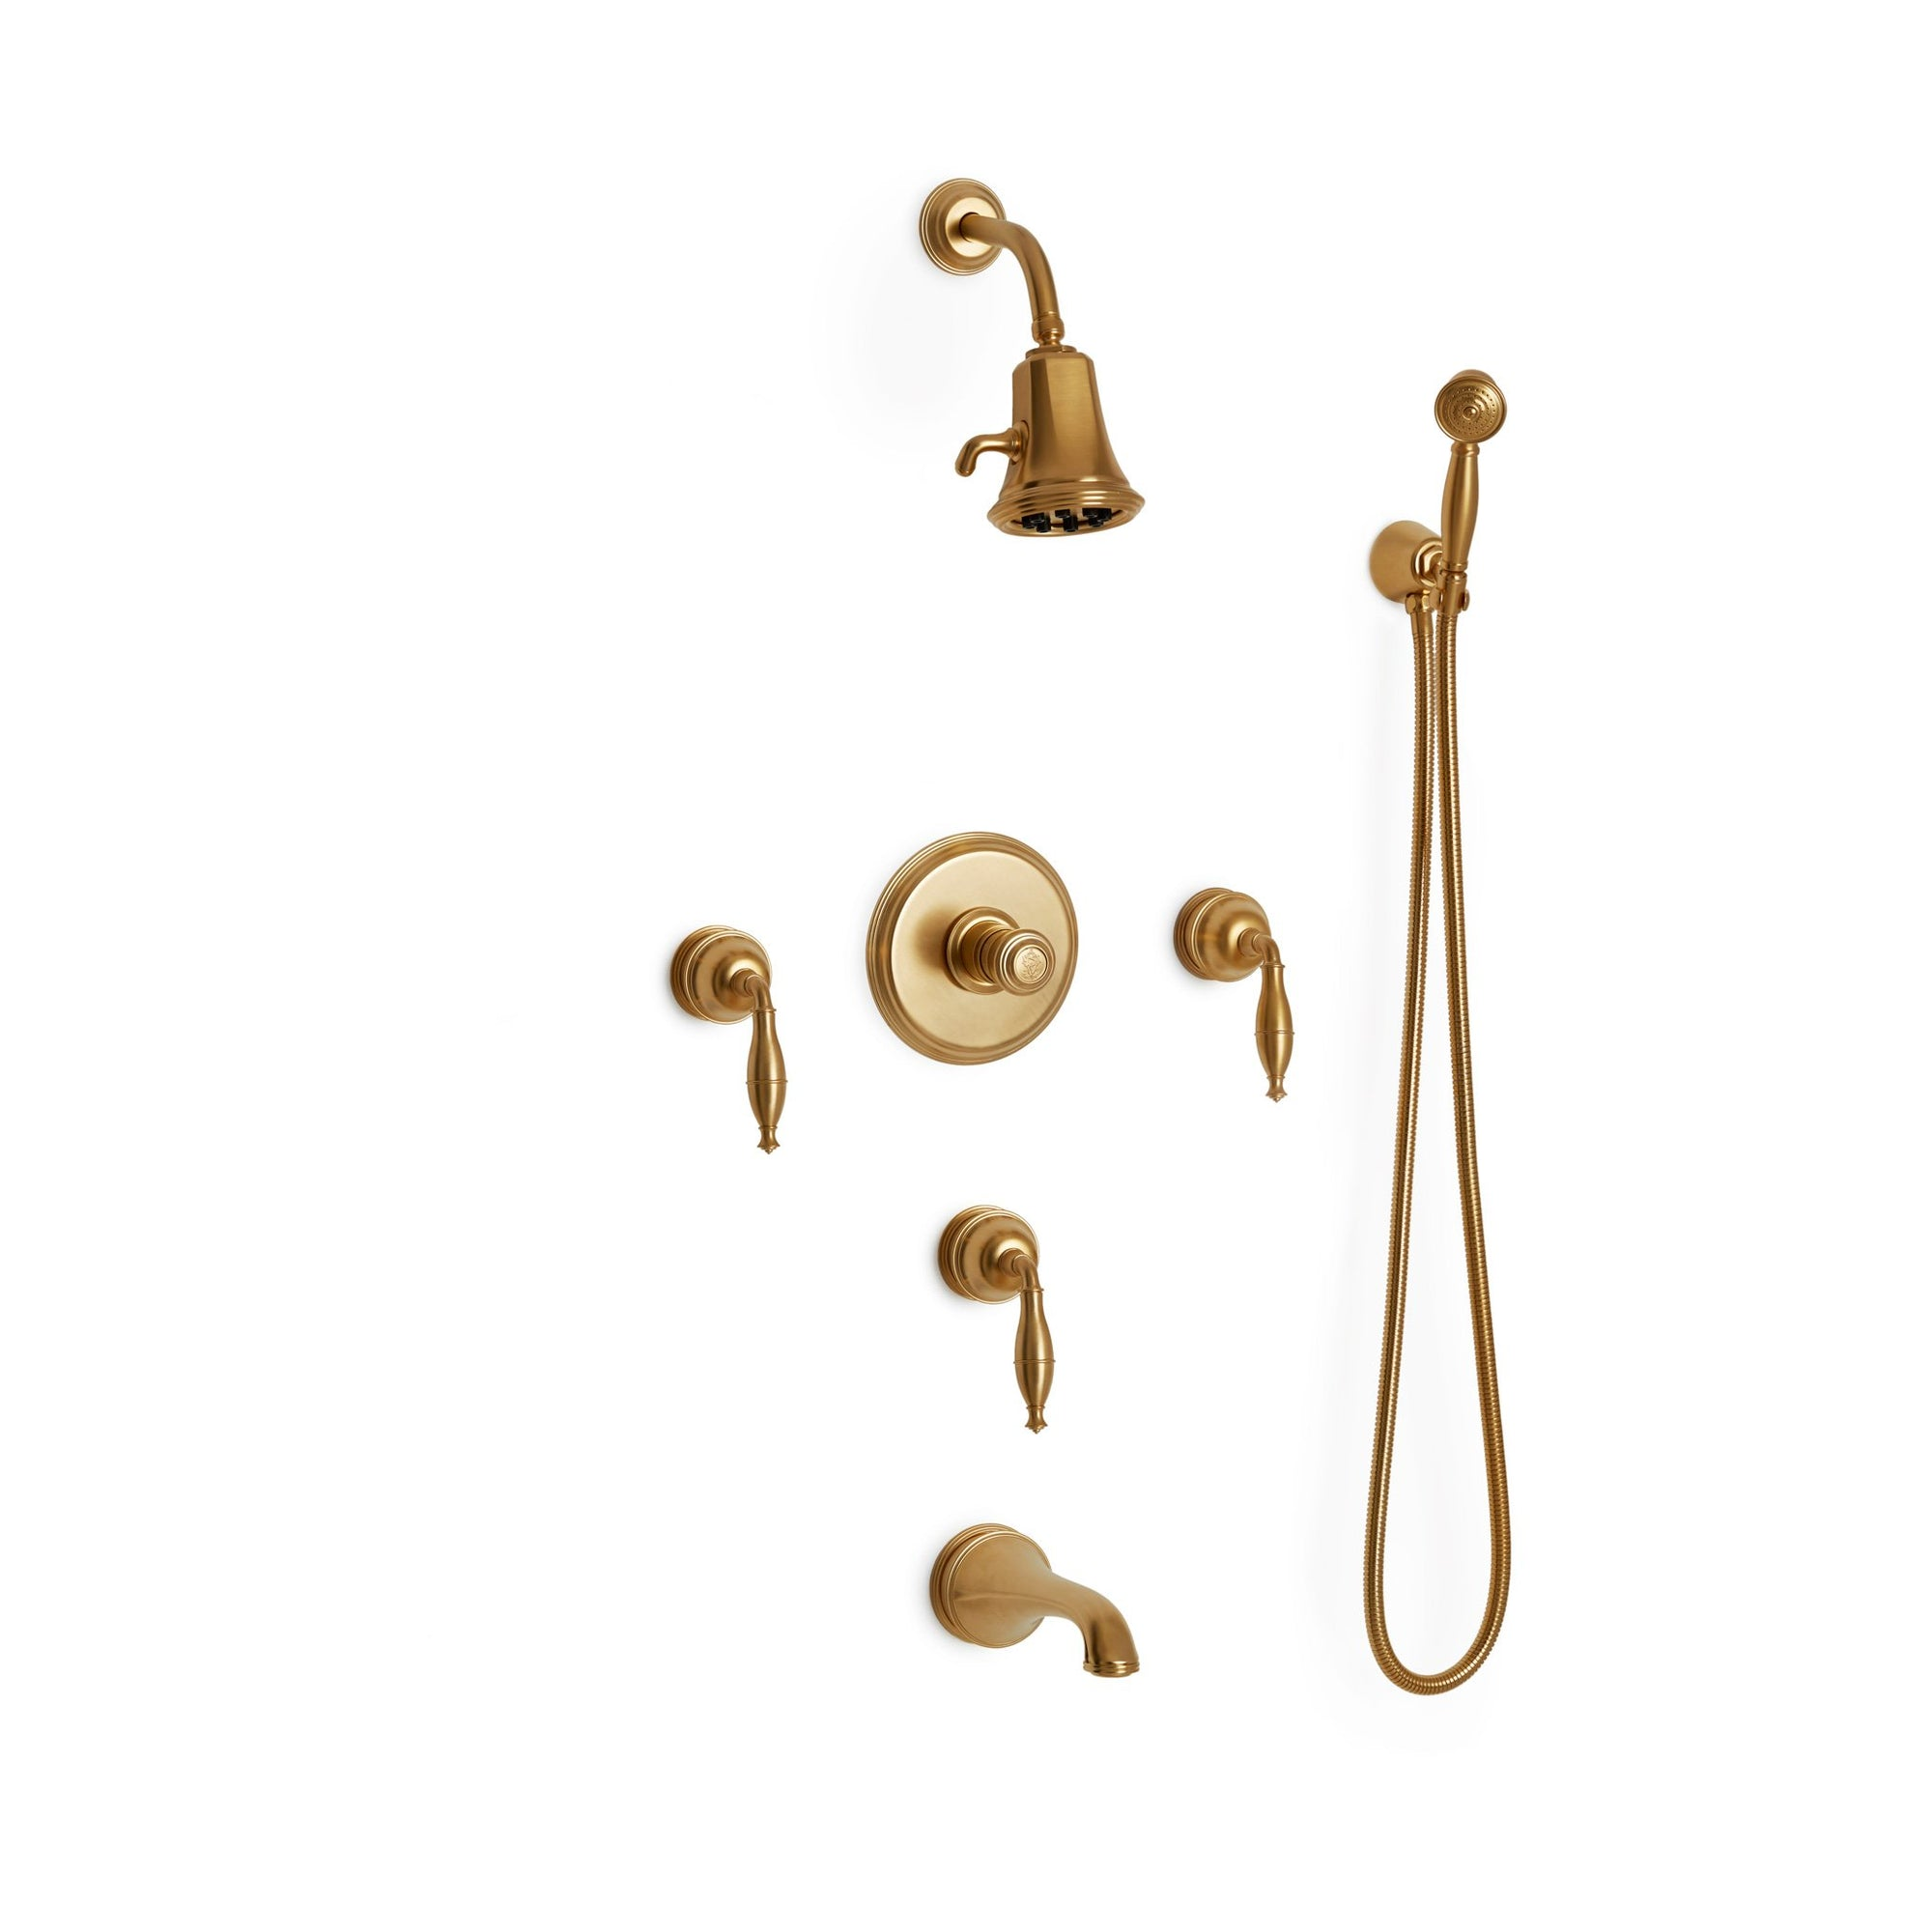 Sherle Wagner International Grey Series I Lever High Flow Thermostatic Shower and Tub System in Gold Plate metal finish